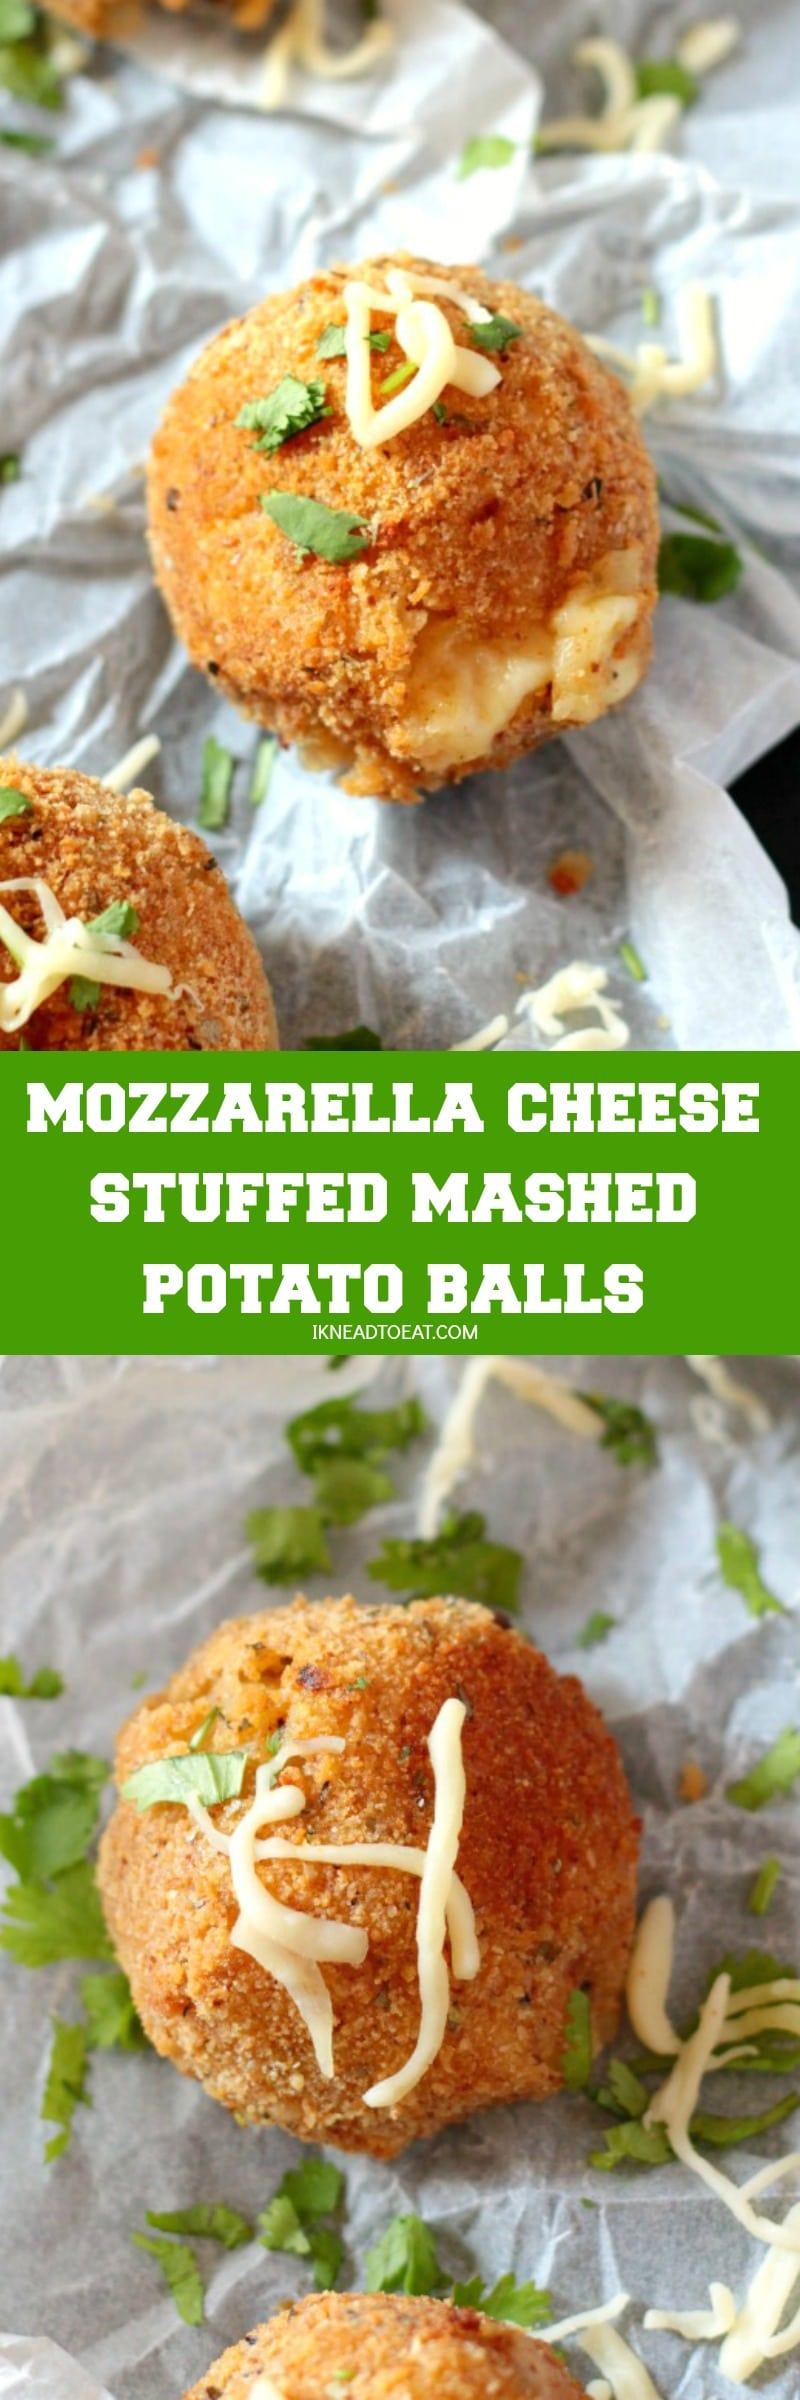 Mozzarella Cheese Stuffed Mashed Potato Balls I Knead To Eat